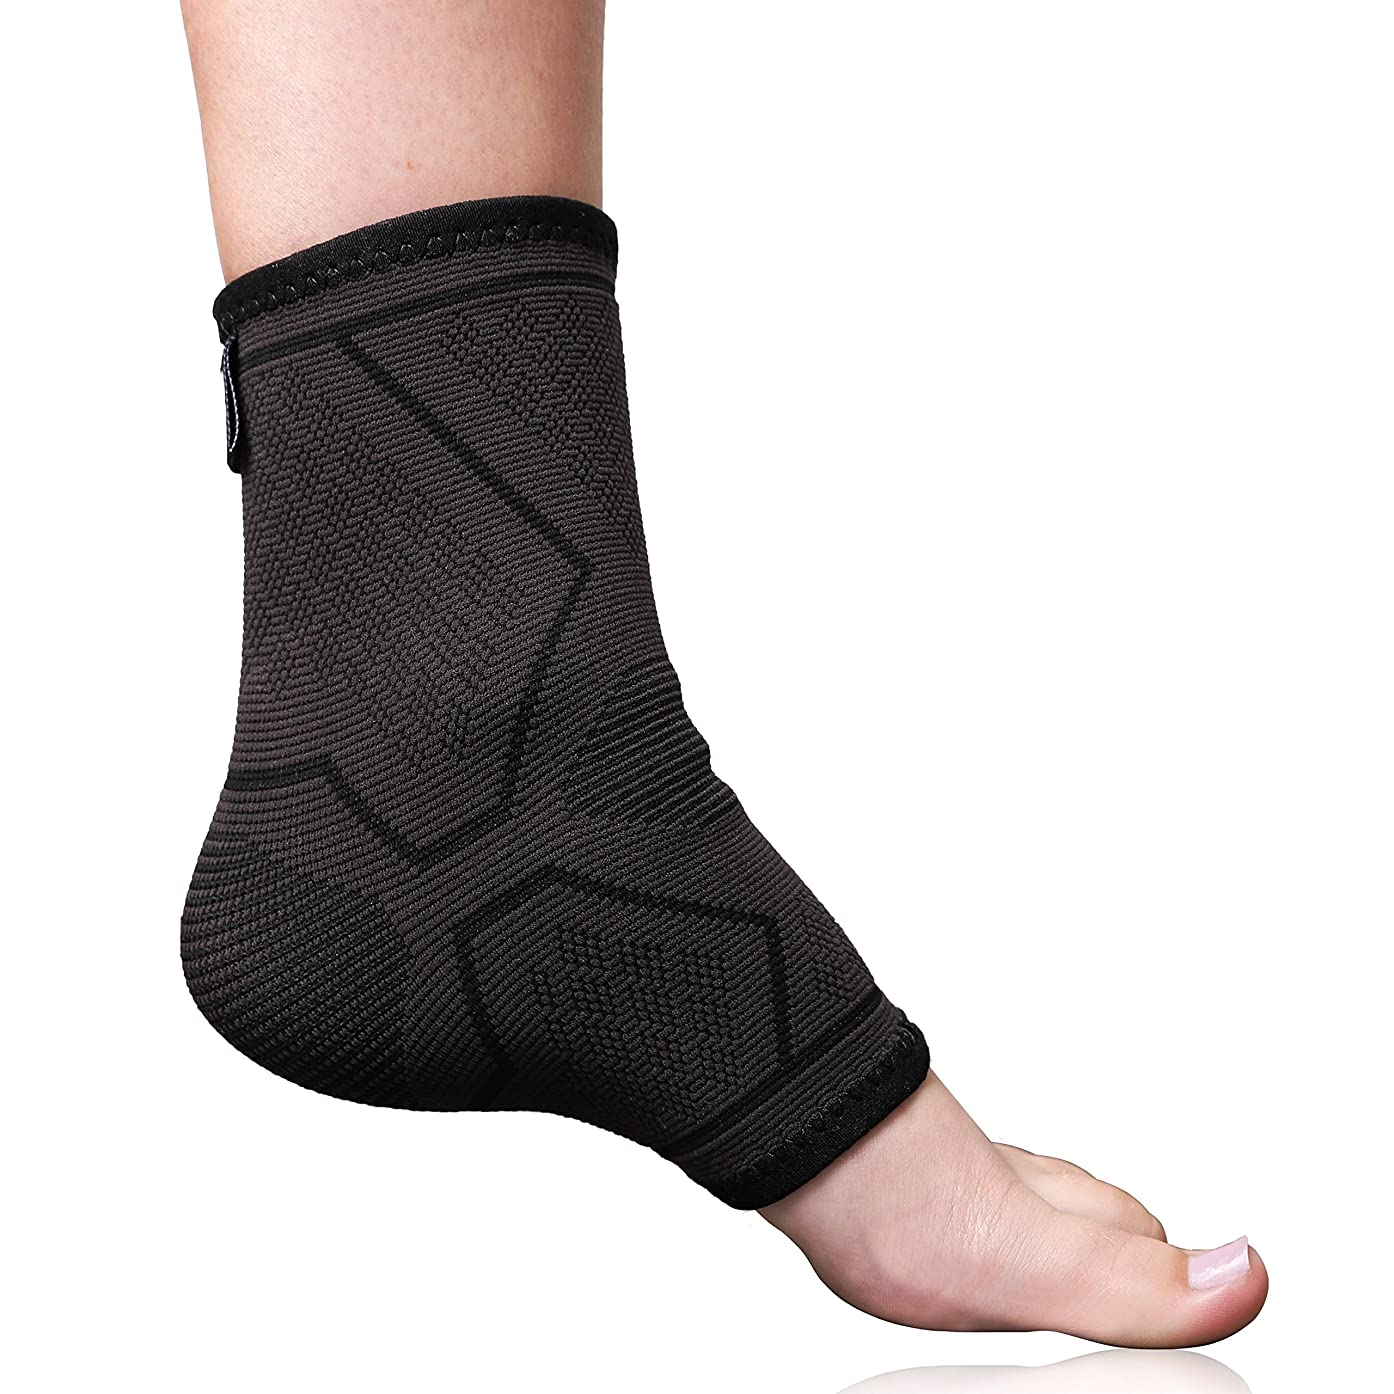 Fit Active Sports Ankle Brace Compression Support Sleeve for Pain Relief, Plantar Fasciitis, Achilles Tendon, Volleyball. Superior Ankle Stabilizer Foot Socks for Sprains, Men and Women